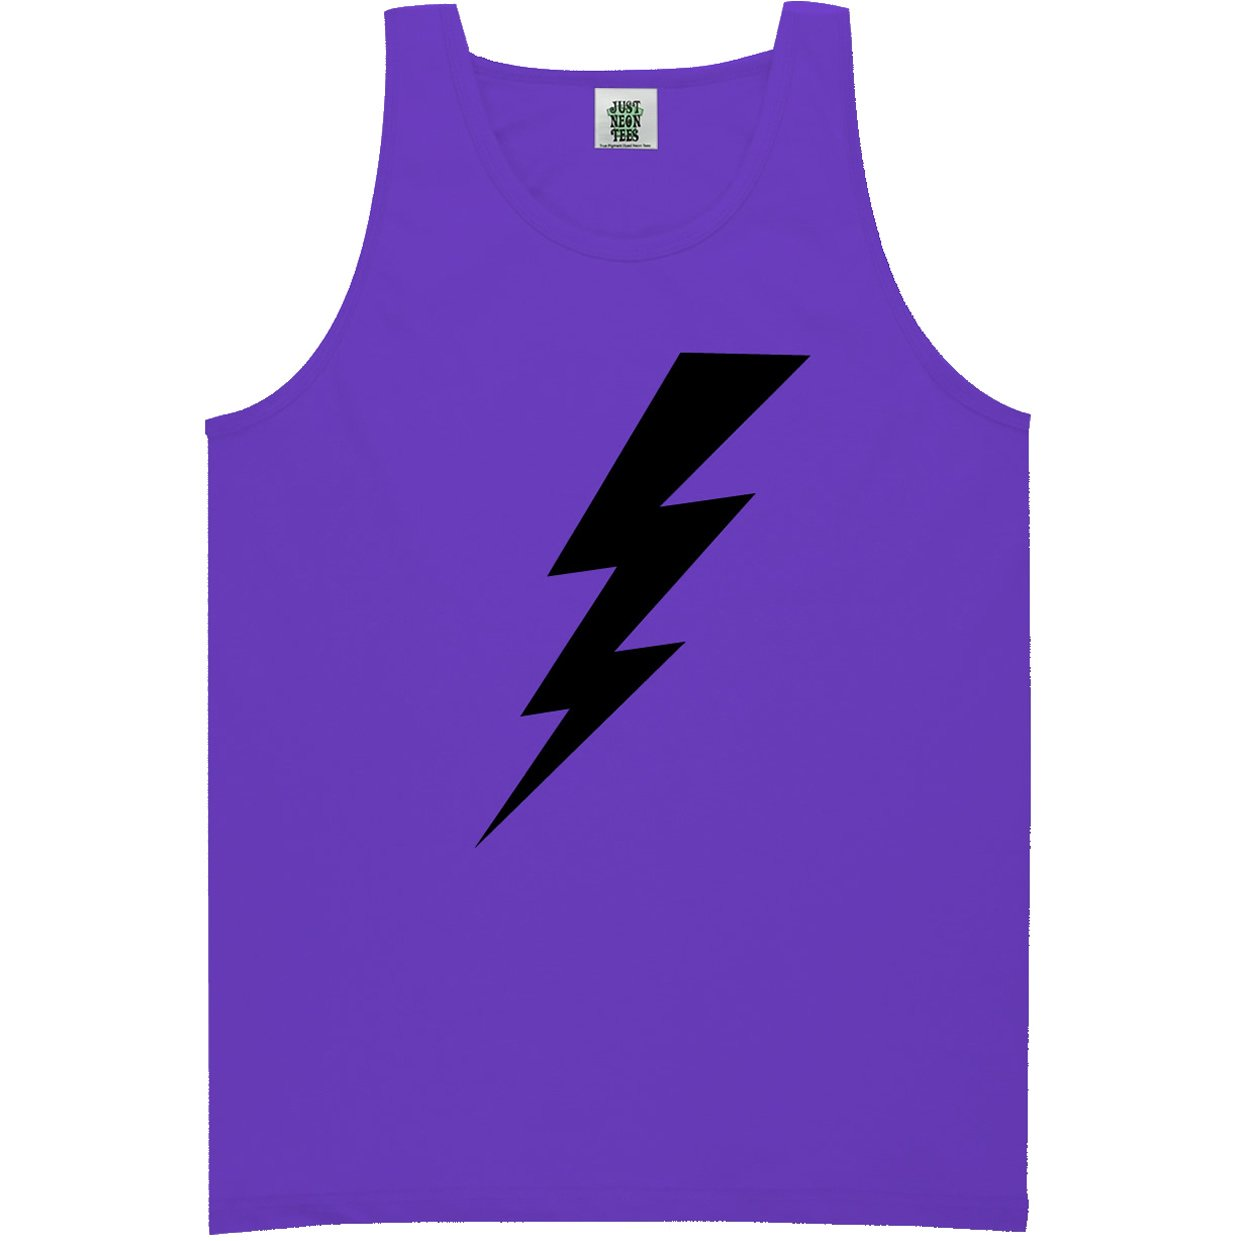 6 Bright Colors Youth Lightning Bolt Bright Neon Tank Top